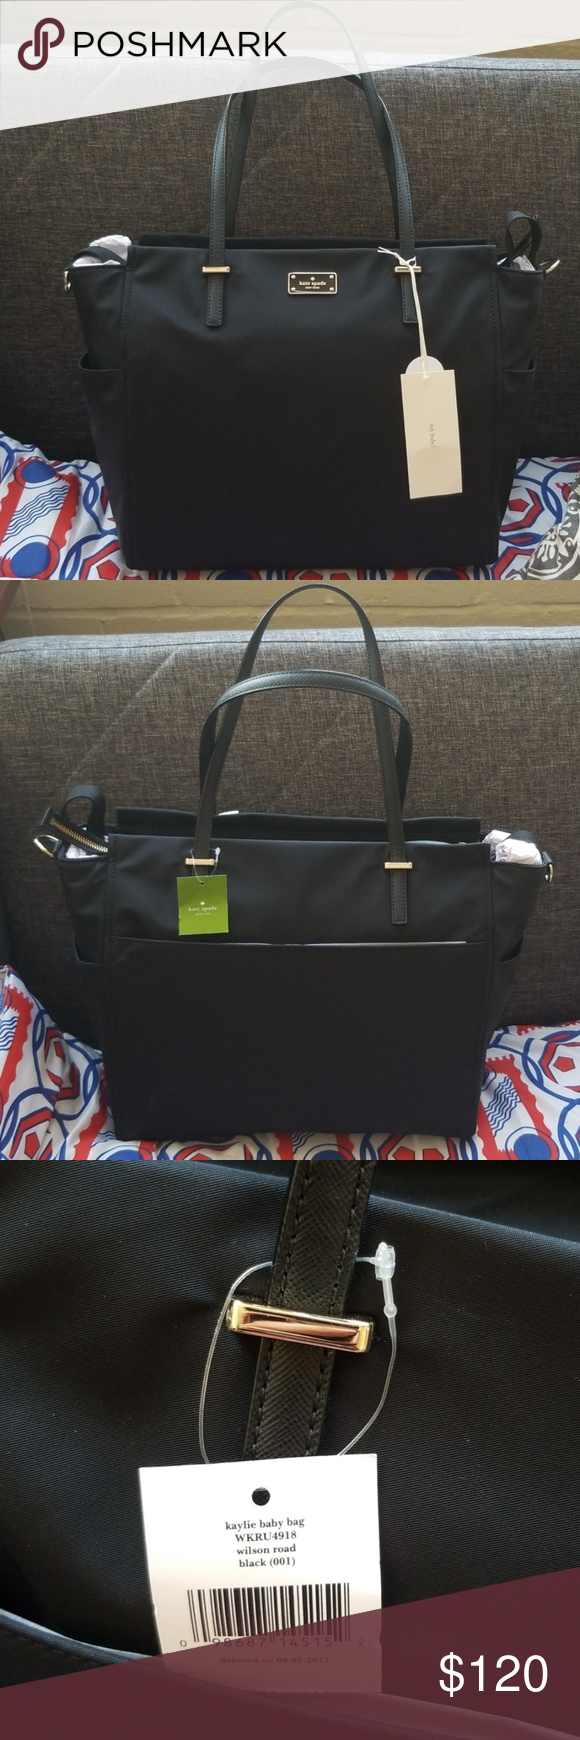 8c080c571769 Kate Spade Kaylie Baby Bag Brand New, Unused Kate Spade Diaper bag with changing  pad, stroller hooks and adjustable strap kate spade Bags Baby Bags